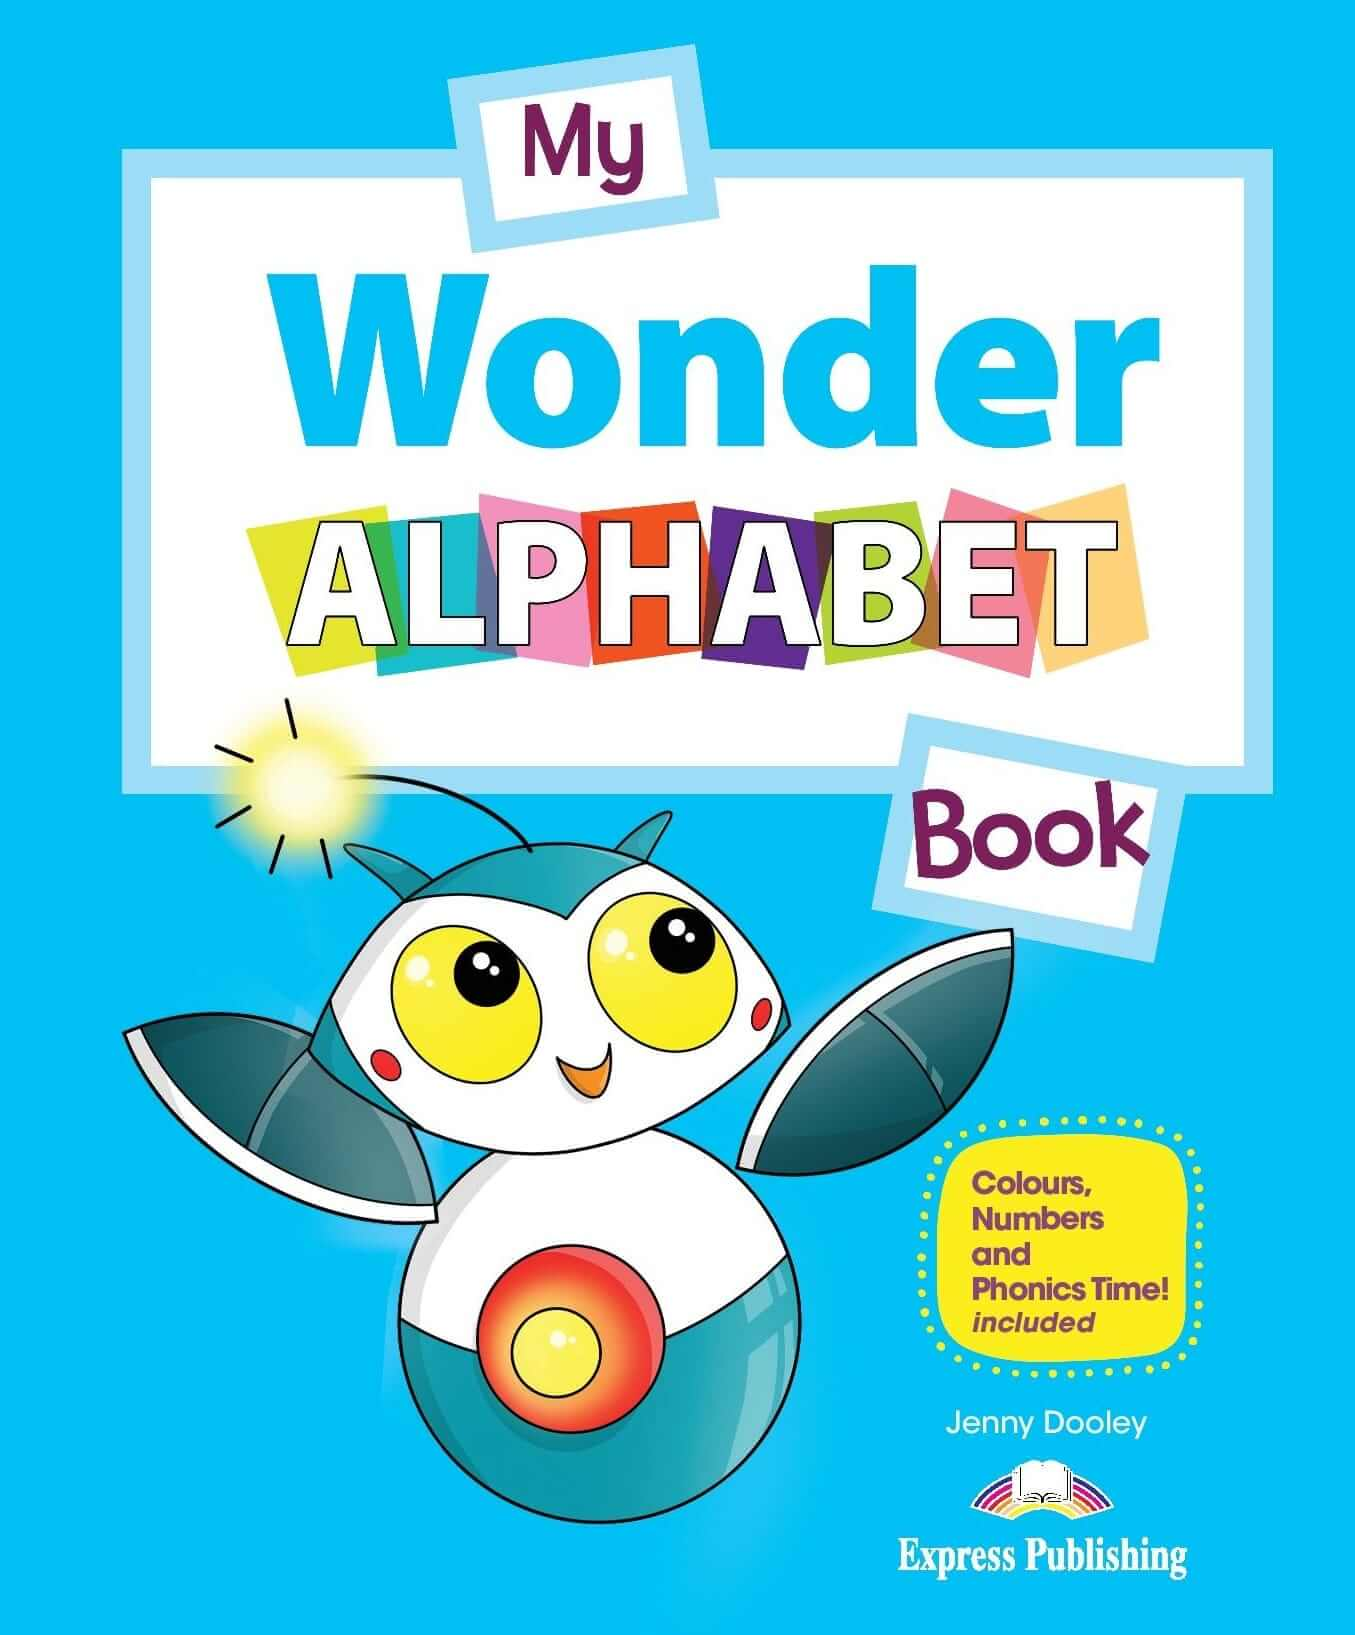 i Wonder - My Wonder Alphabet Book